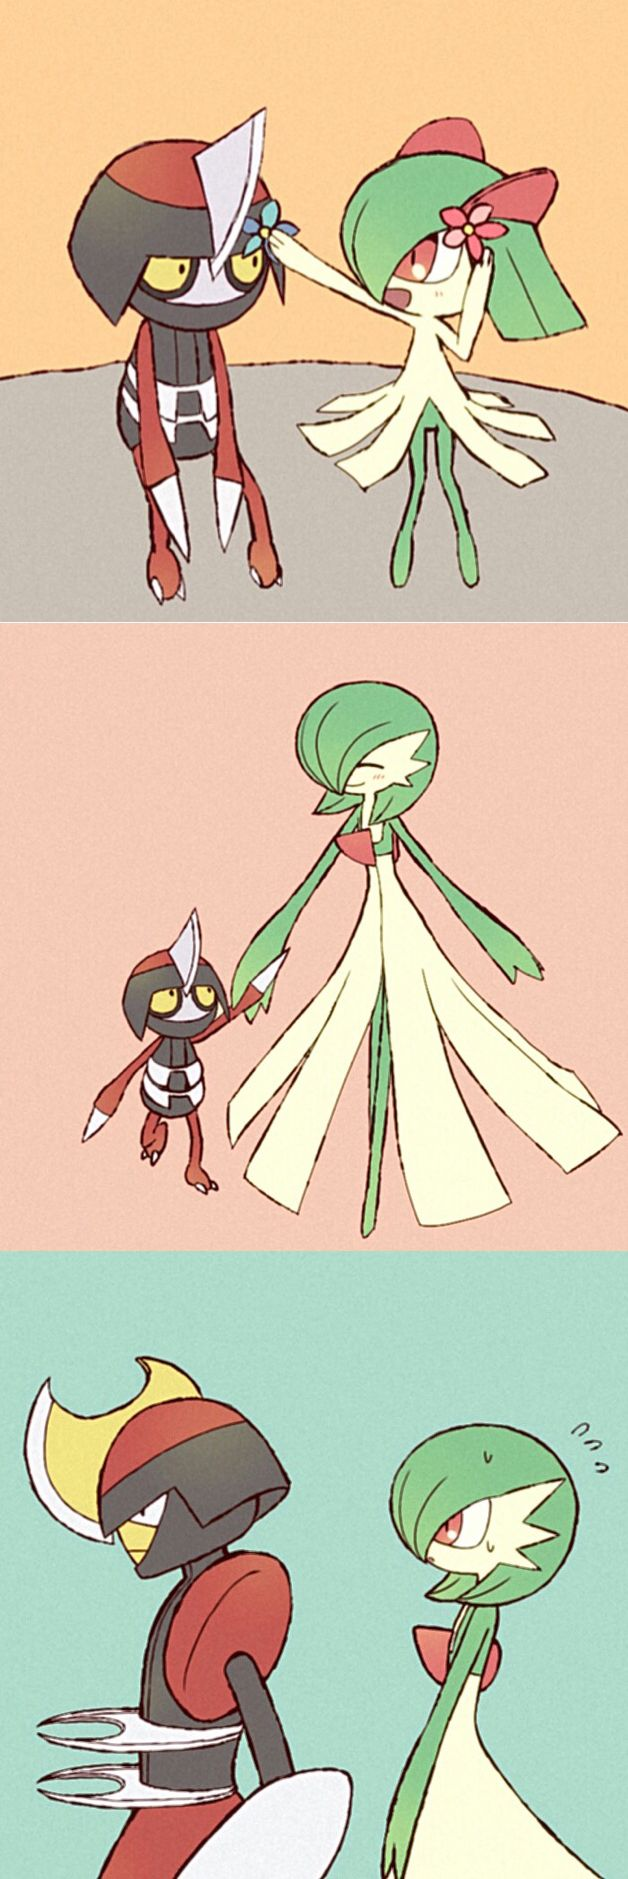 He Means Well Though He S Keeping Her Away Because He Doesn T Want To Hurt Her Since Fairy Psychic Is Weak To Dar Cute Pokemon Pokemon Pictures Pokemon Comics